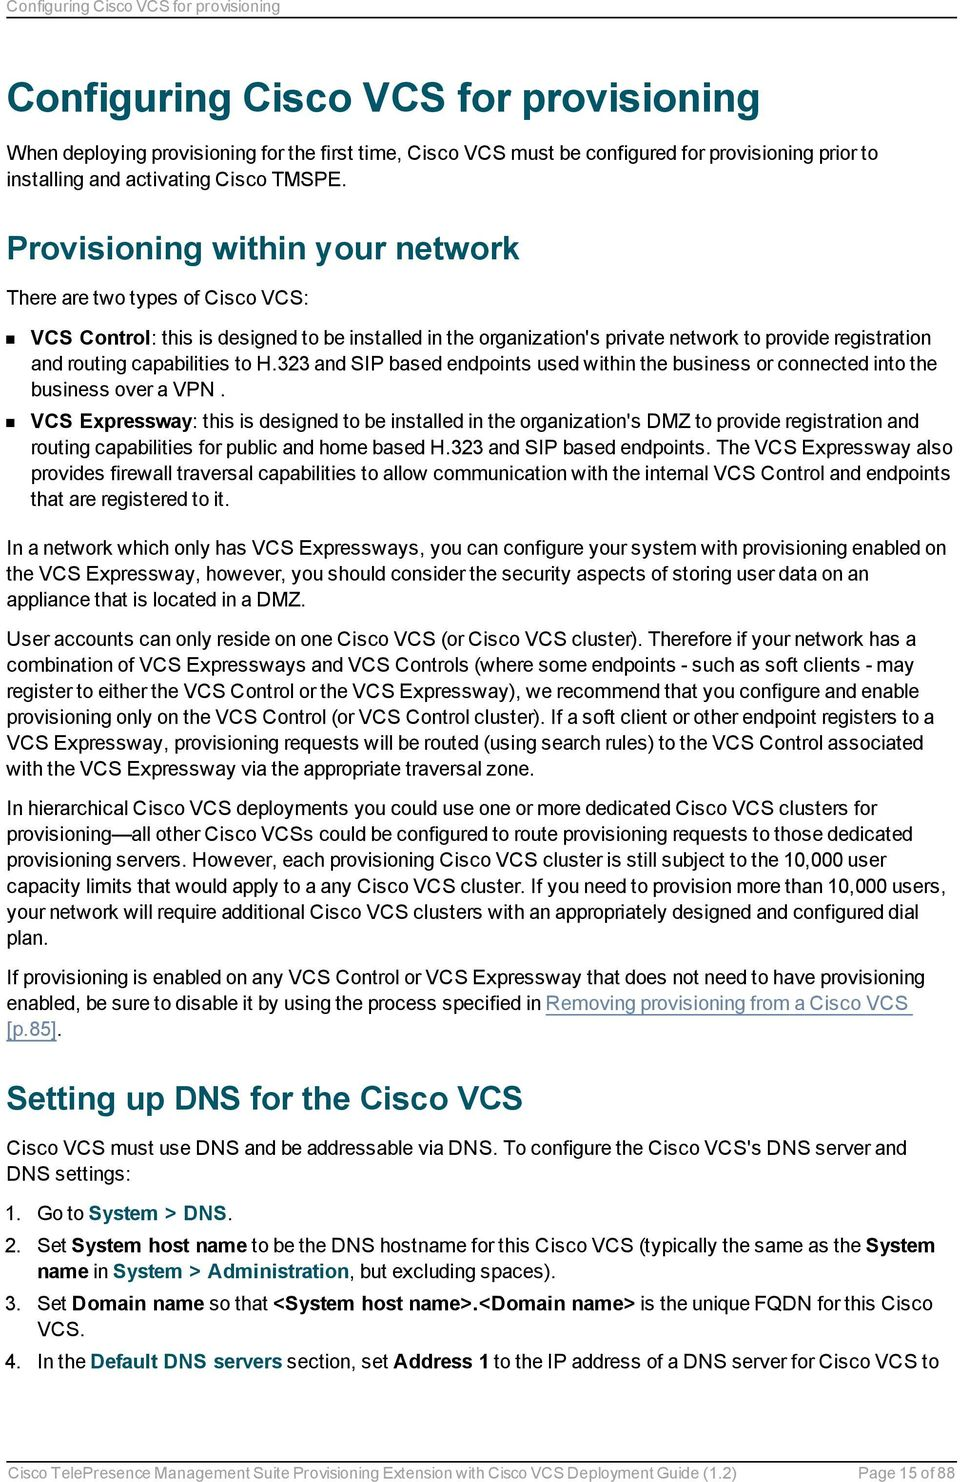 Provisioning within your network There are two types of Cisco VCS: VCS Control: this is designed to be installed in the organization's private network to provide registration and routing capabilities